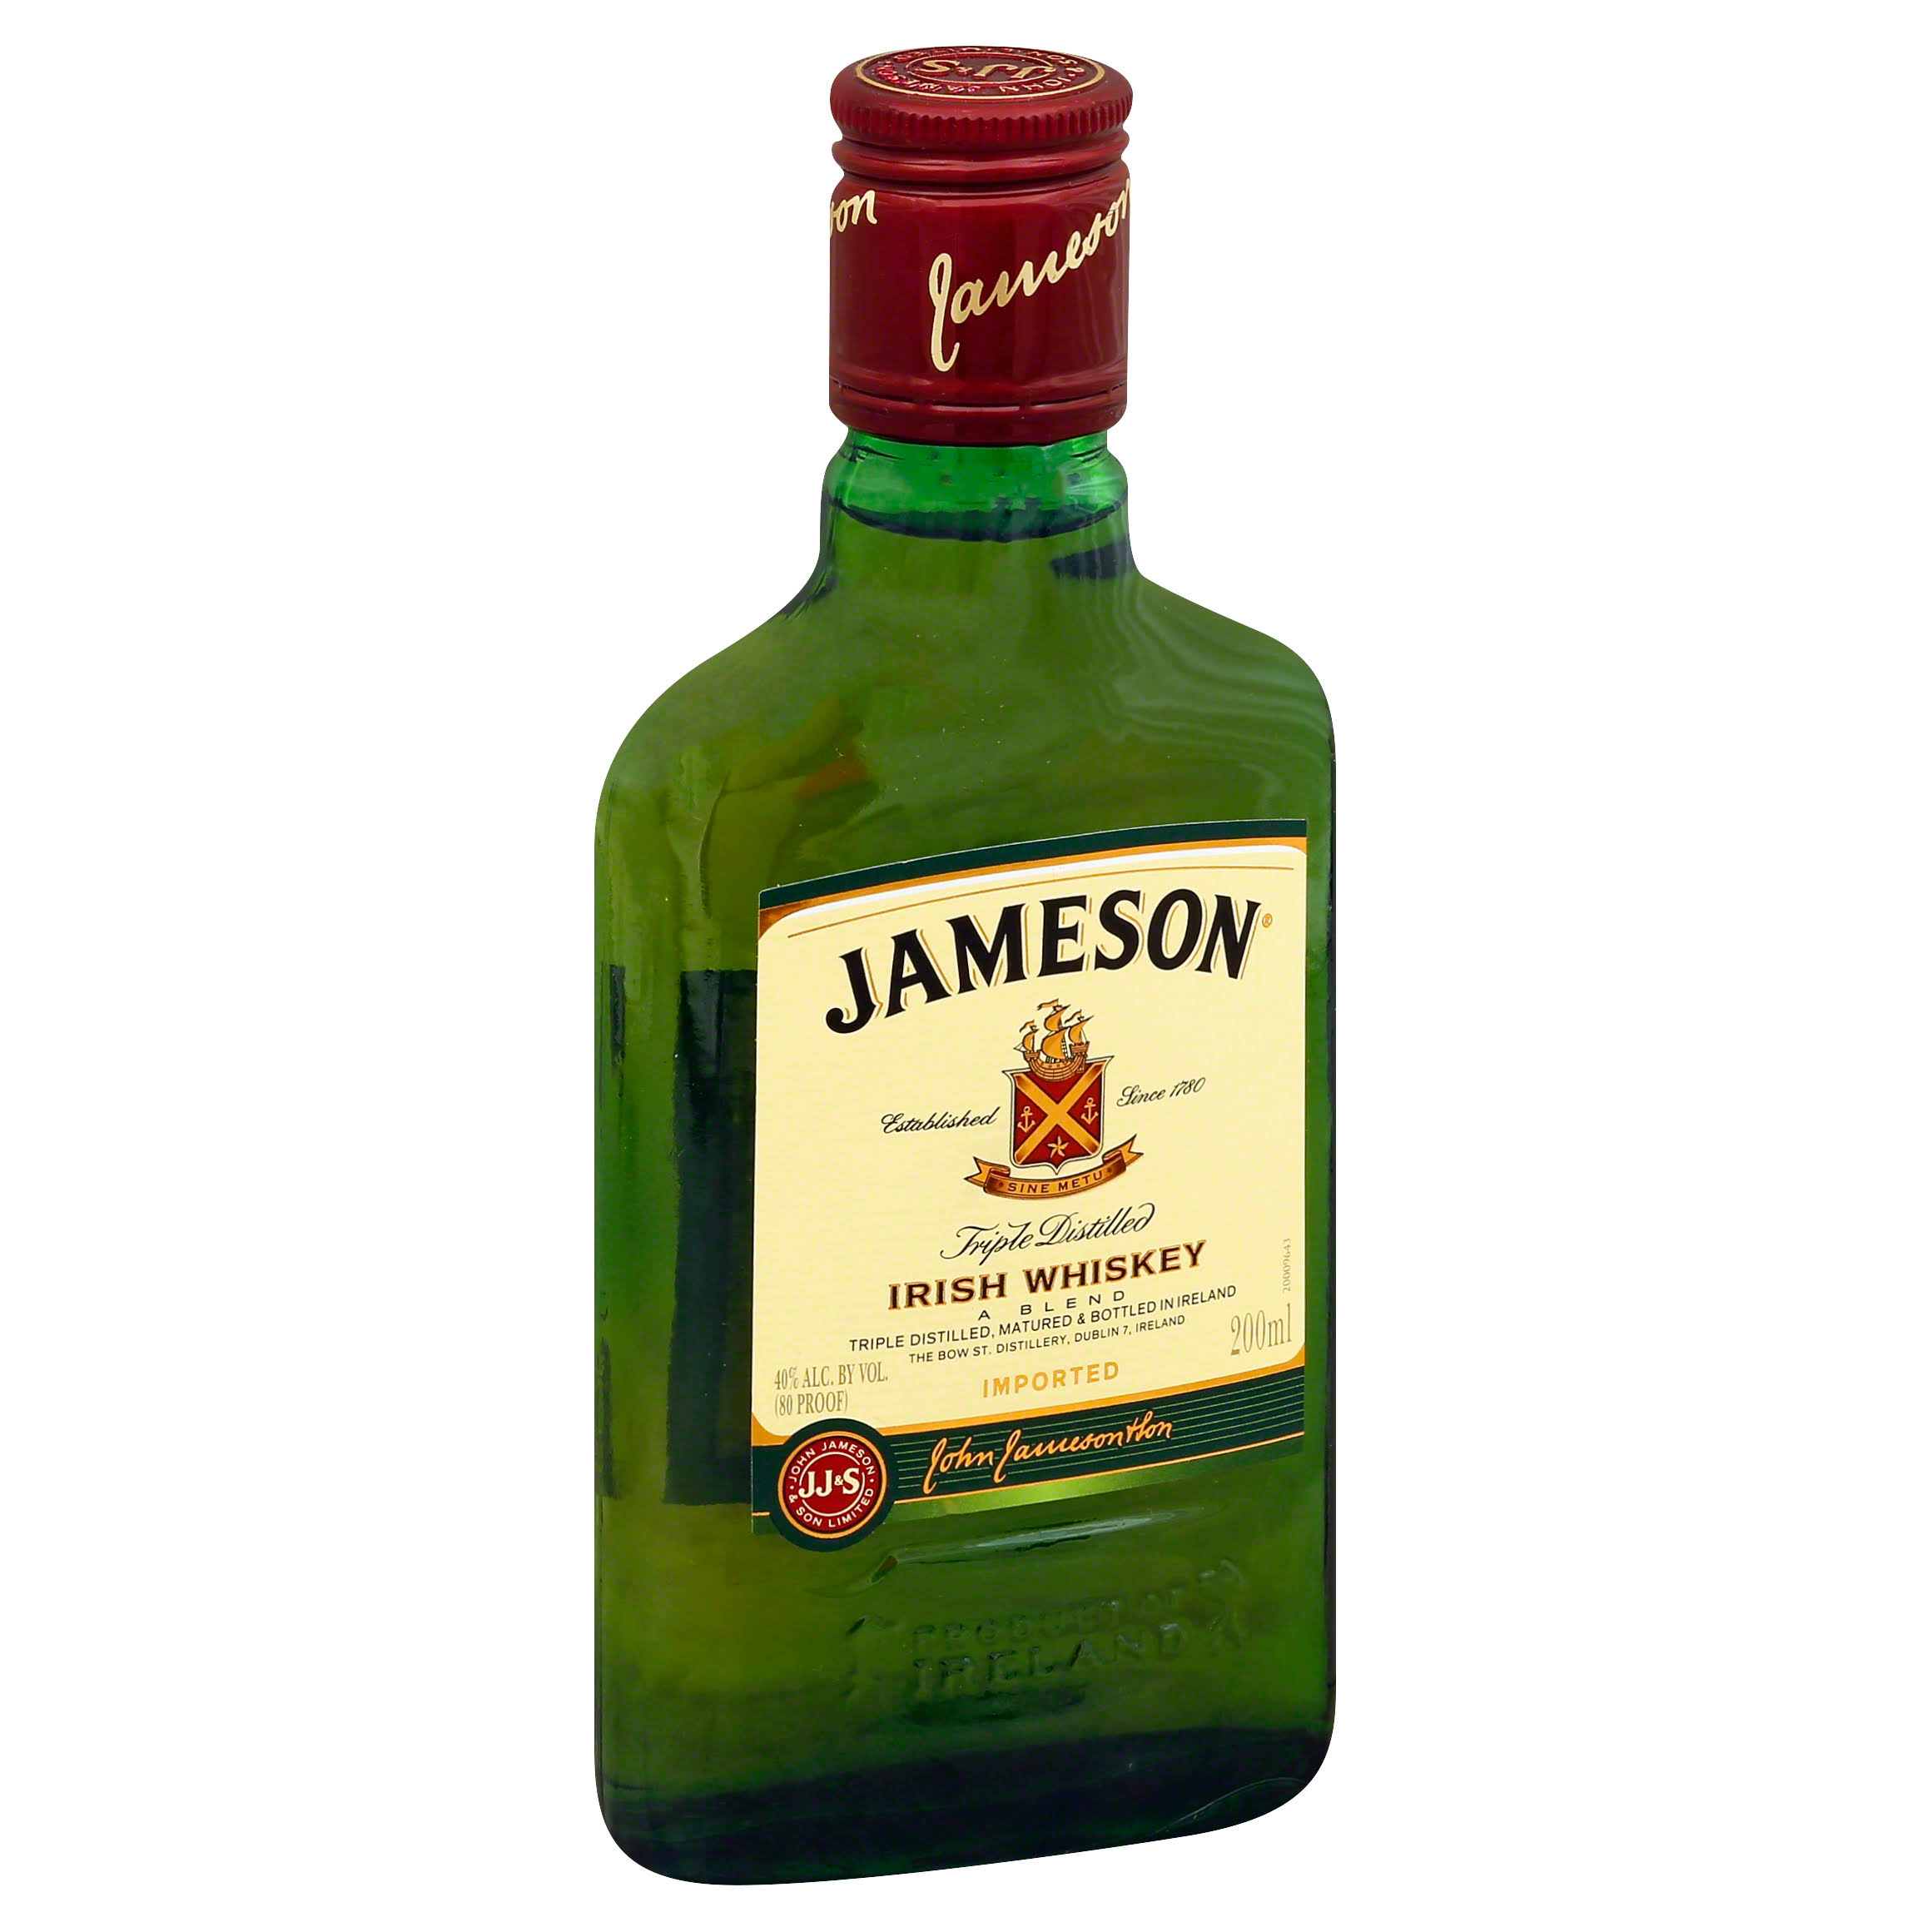 Jameson Irish Whiskey - 200 ml bottle